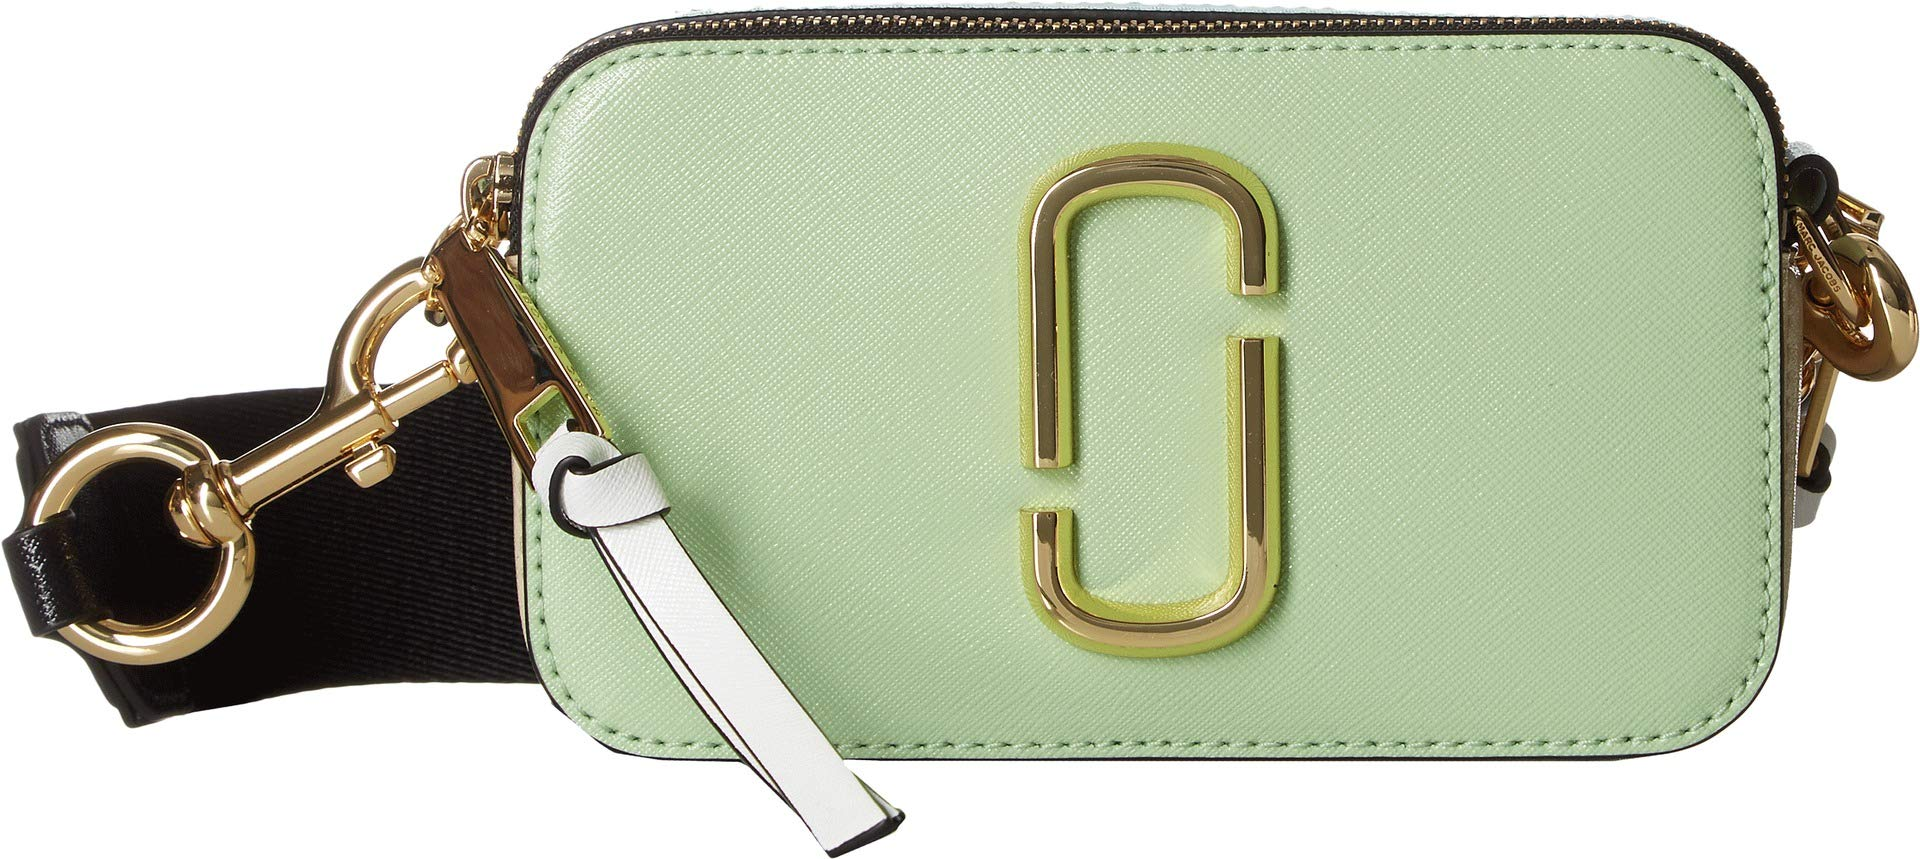 Marc Jacobs Women's Snapshot Mint Multi One Size